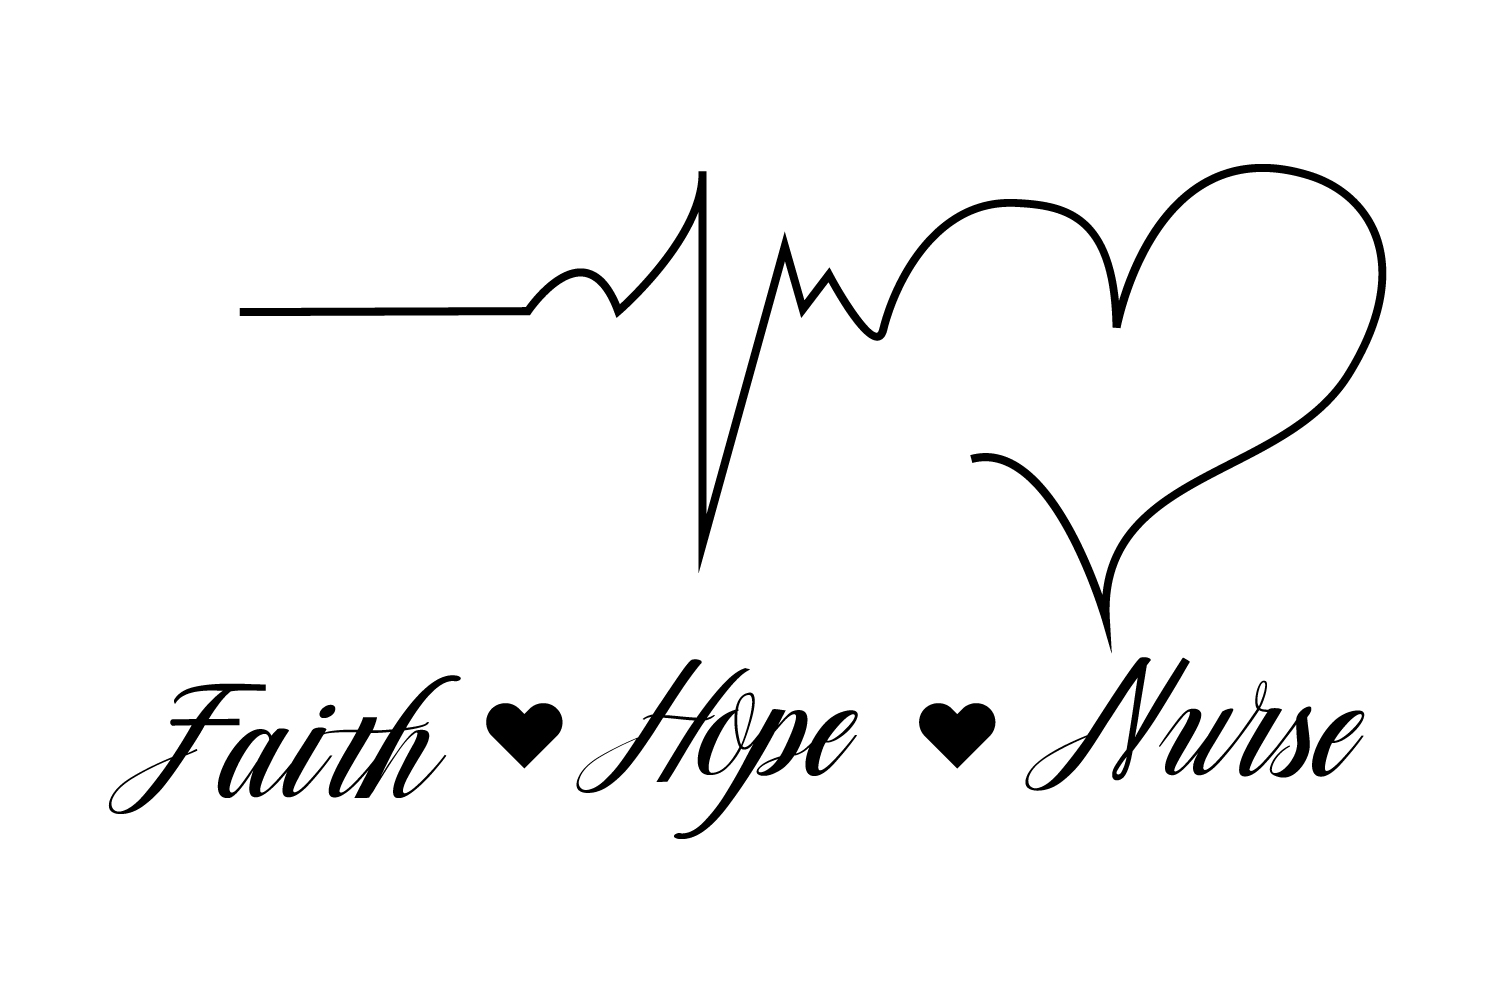 Faith Hope Nurse Svg,Dxf,Png,Jpg,Eps vector file example image 3